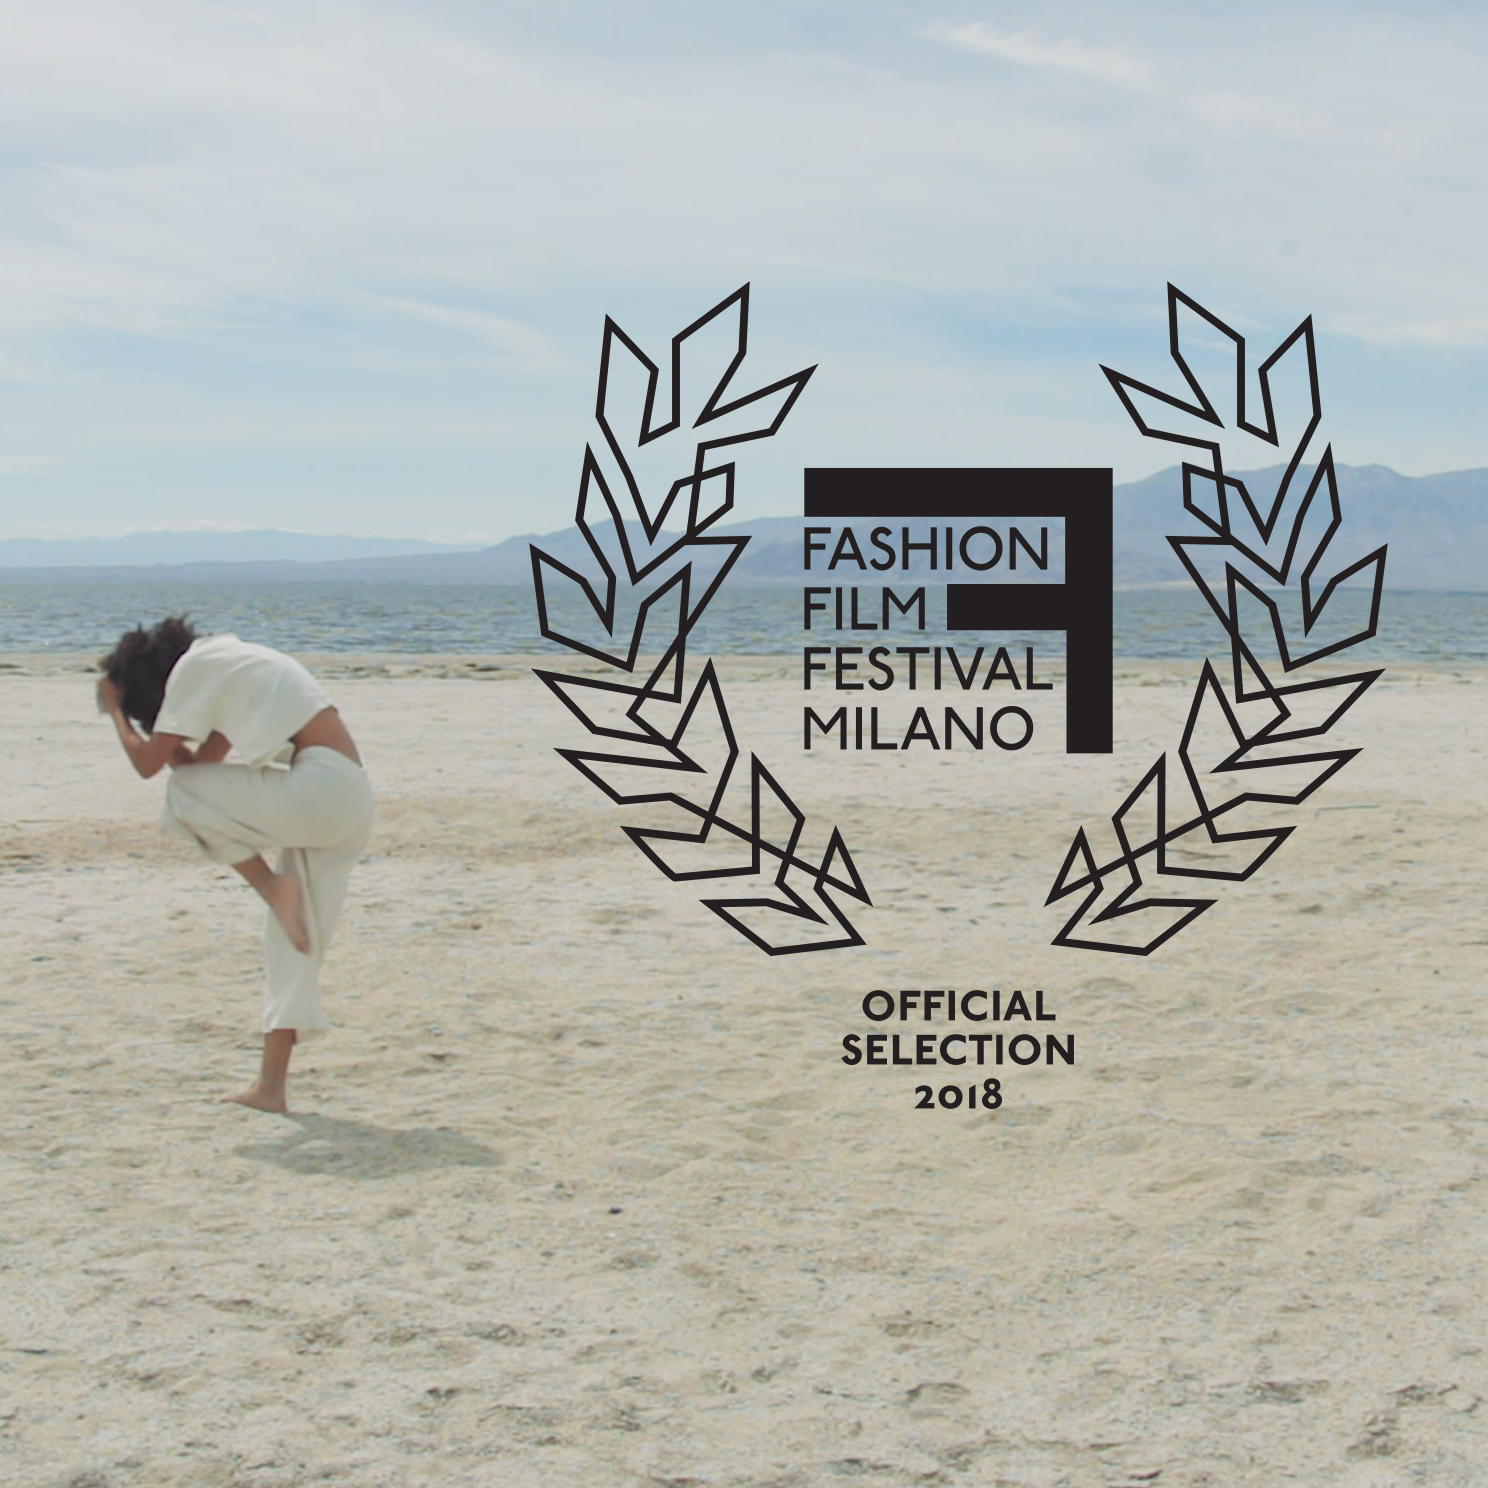 To be presented at this years   Fashion and Film Festival in Milan  . Sep. 2018.